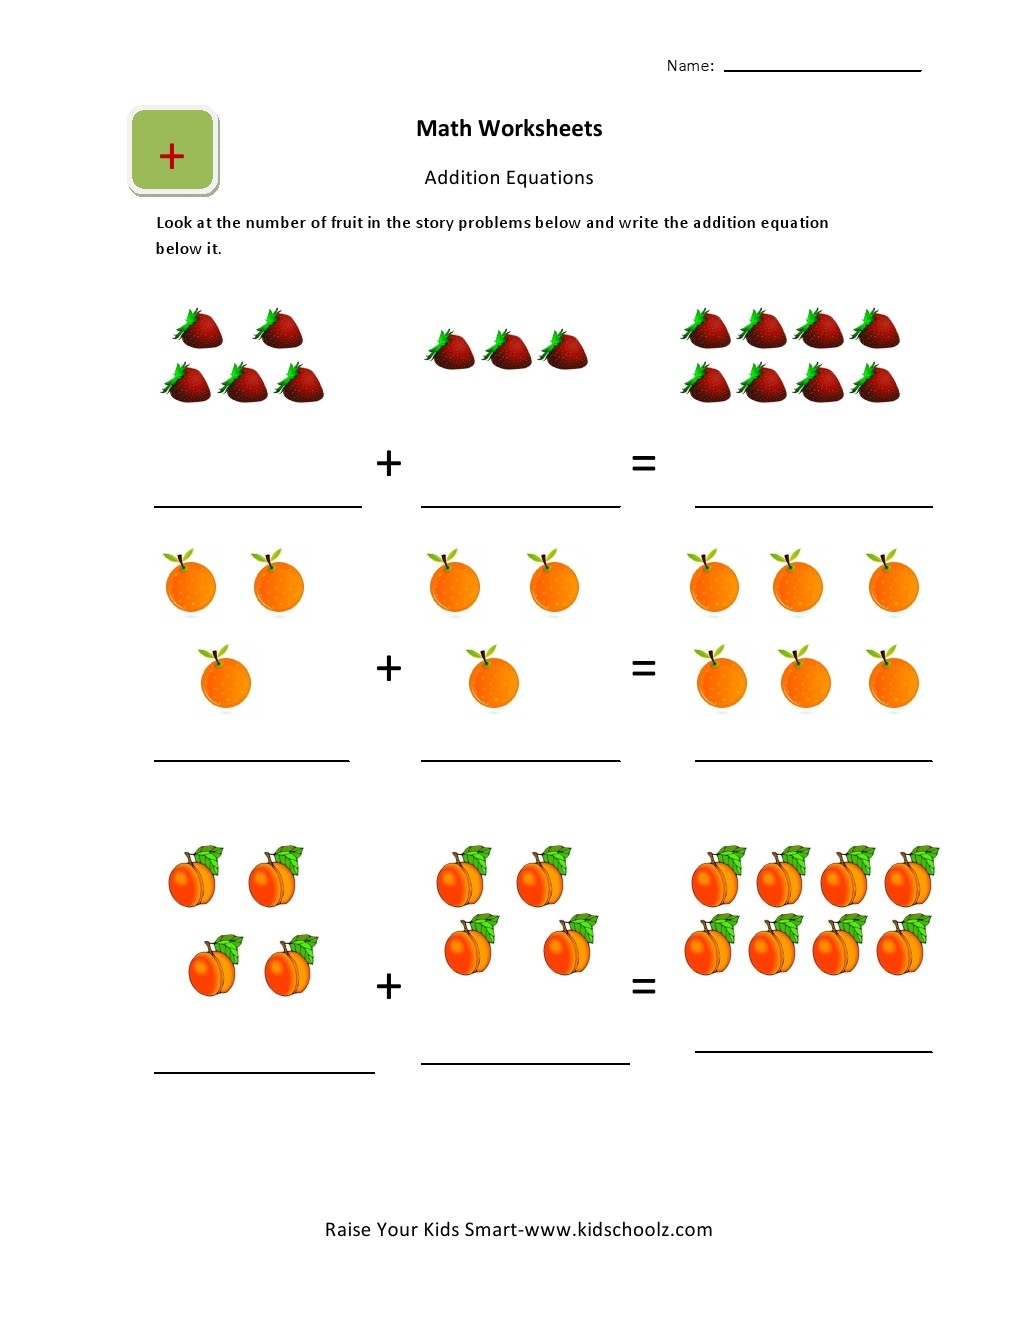 math worksheet : ukg basic picture addition worksheets for kids  : Addition Sentence Worksheets